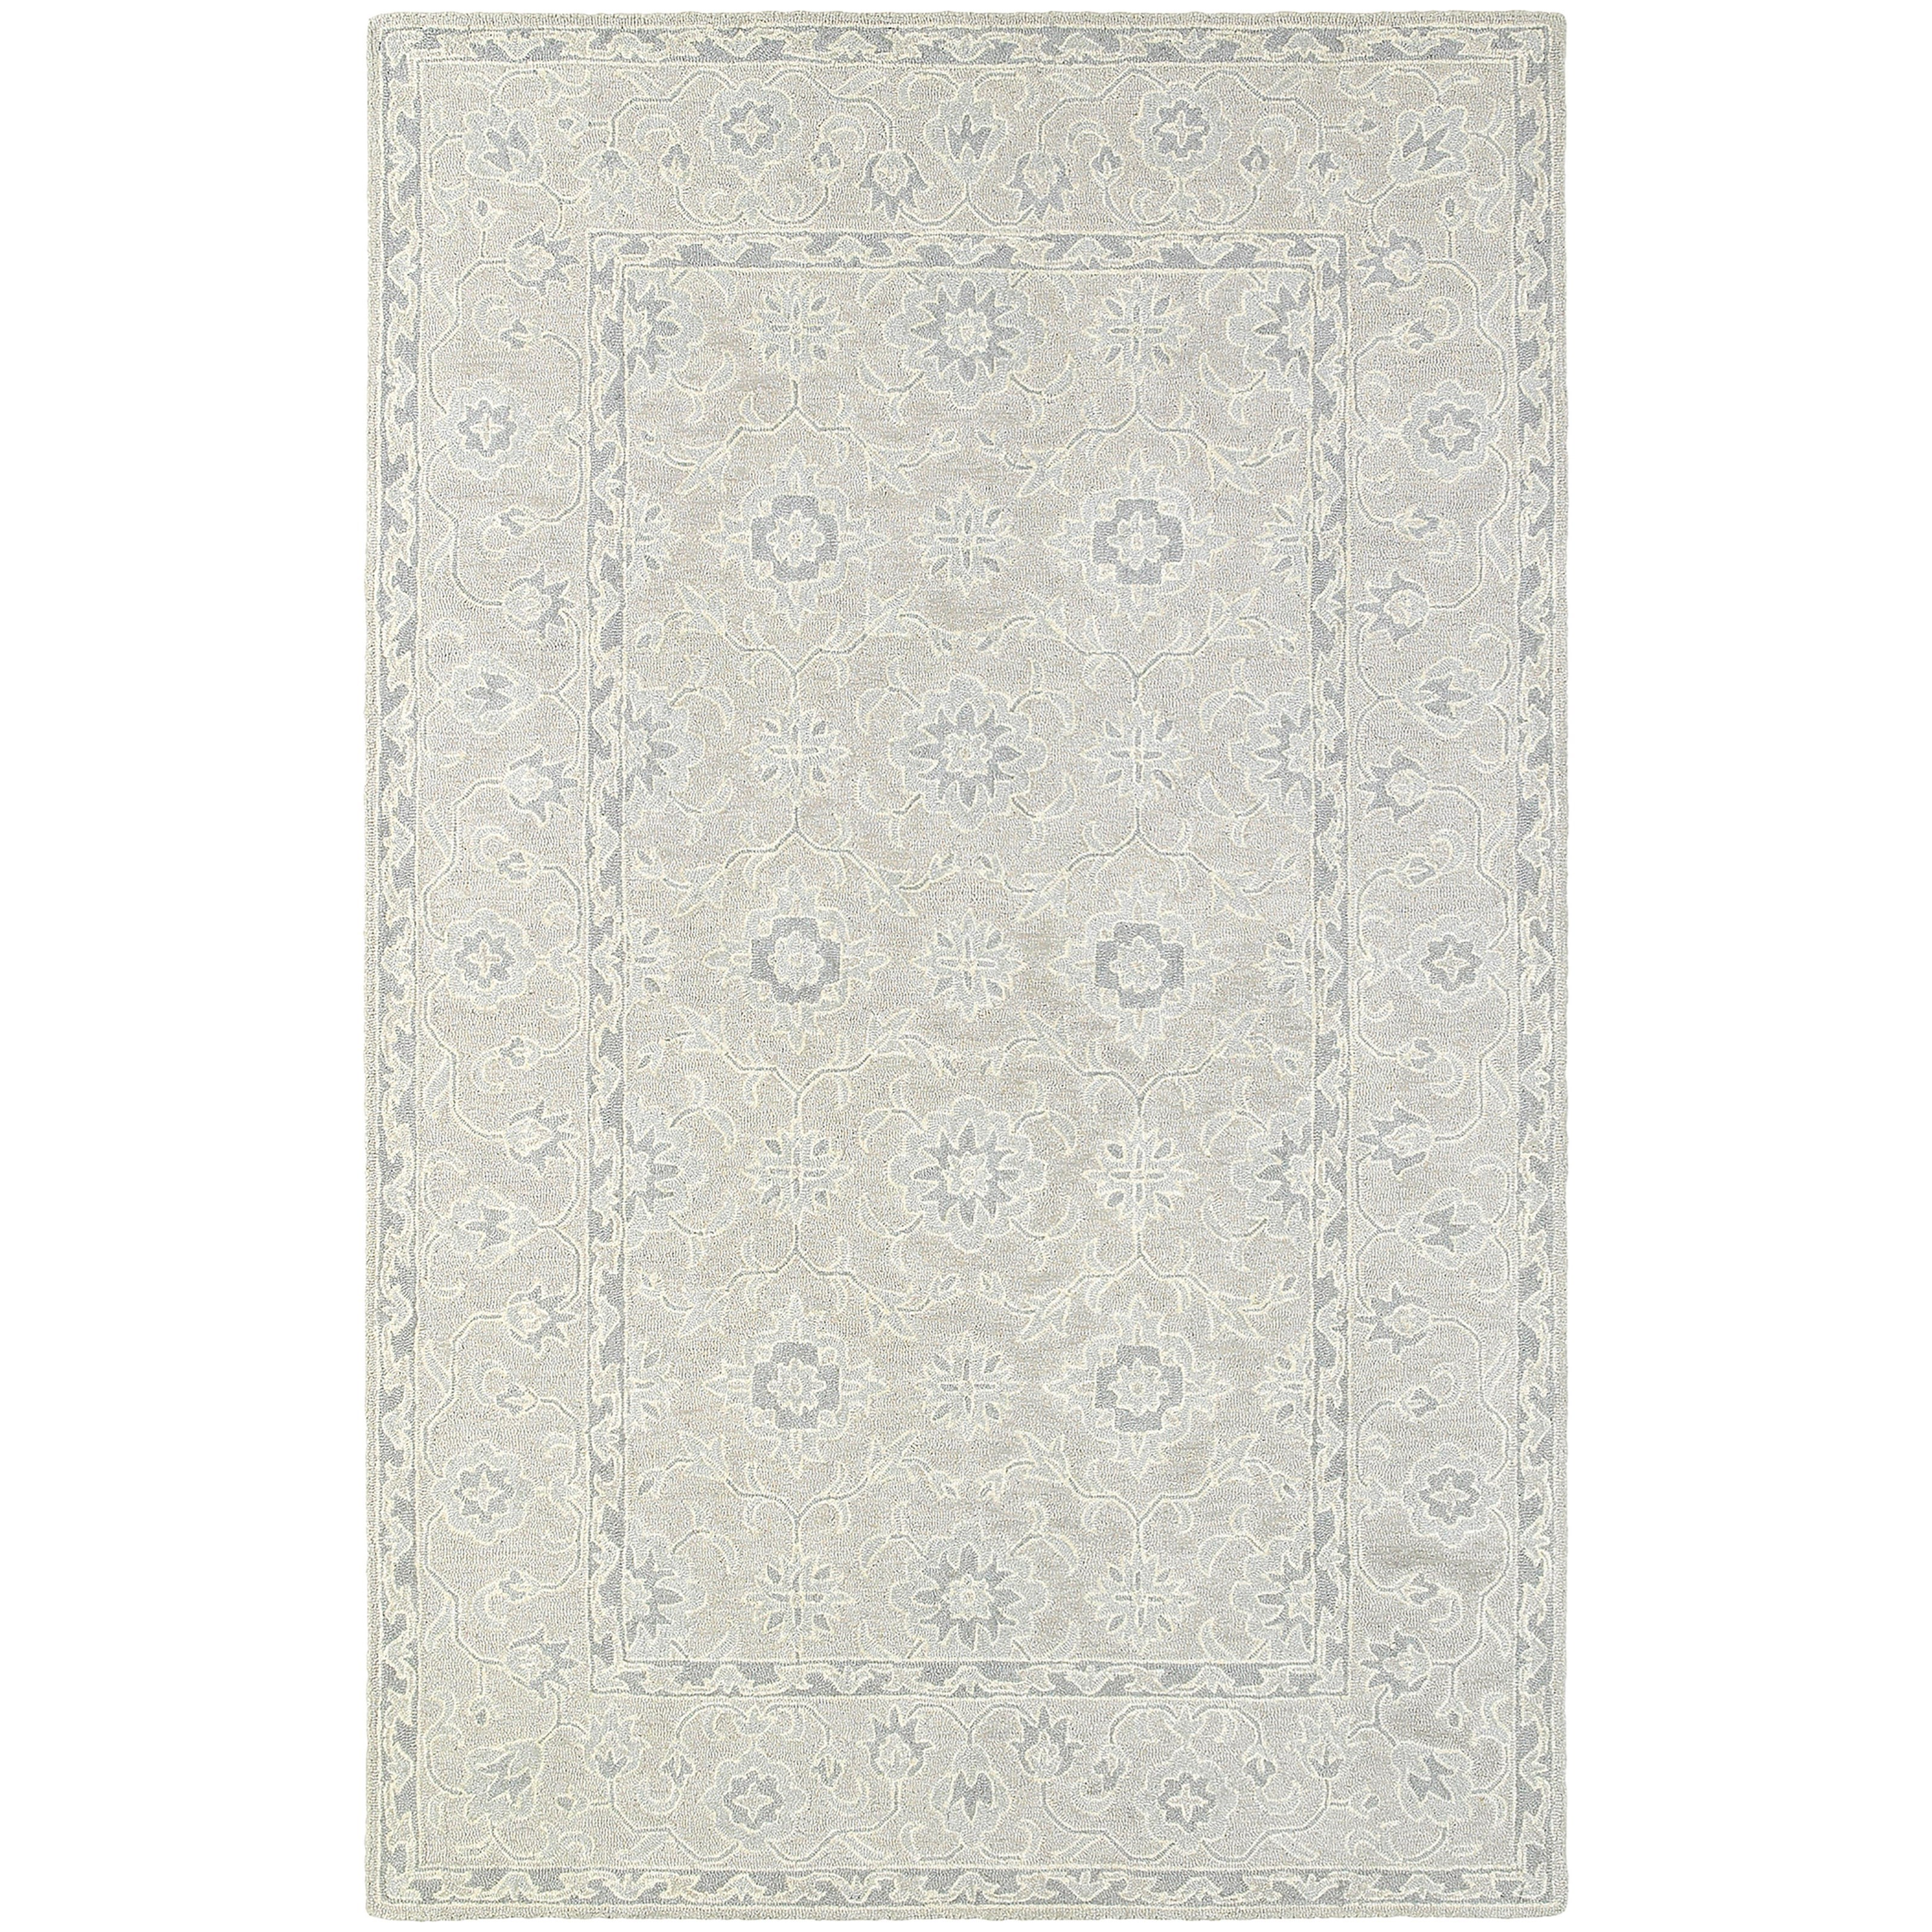 """Manor 8' 0"""" X 10' 0"""" Casual Beige/ Grey Rectangle  by Oriental Weavers at Miller Waldrop Furniture and Decor"""